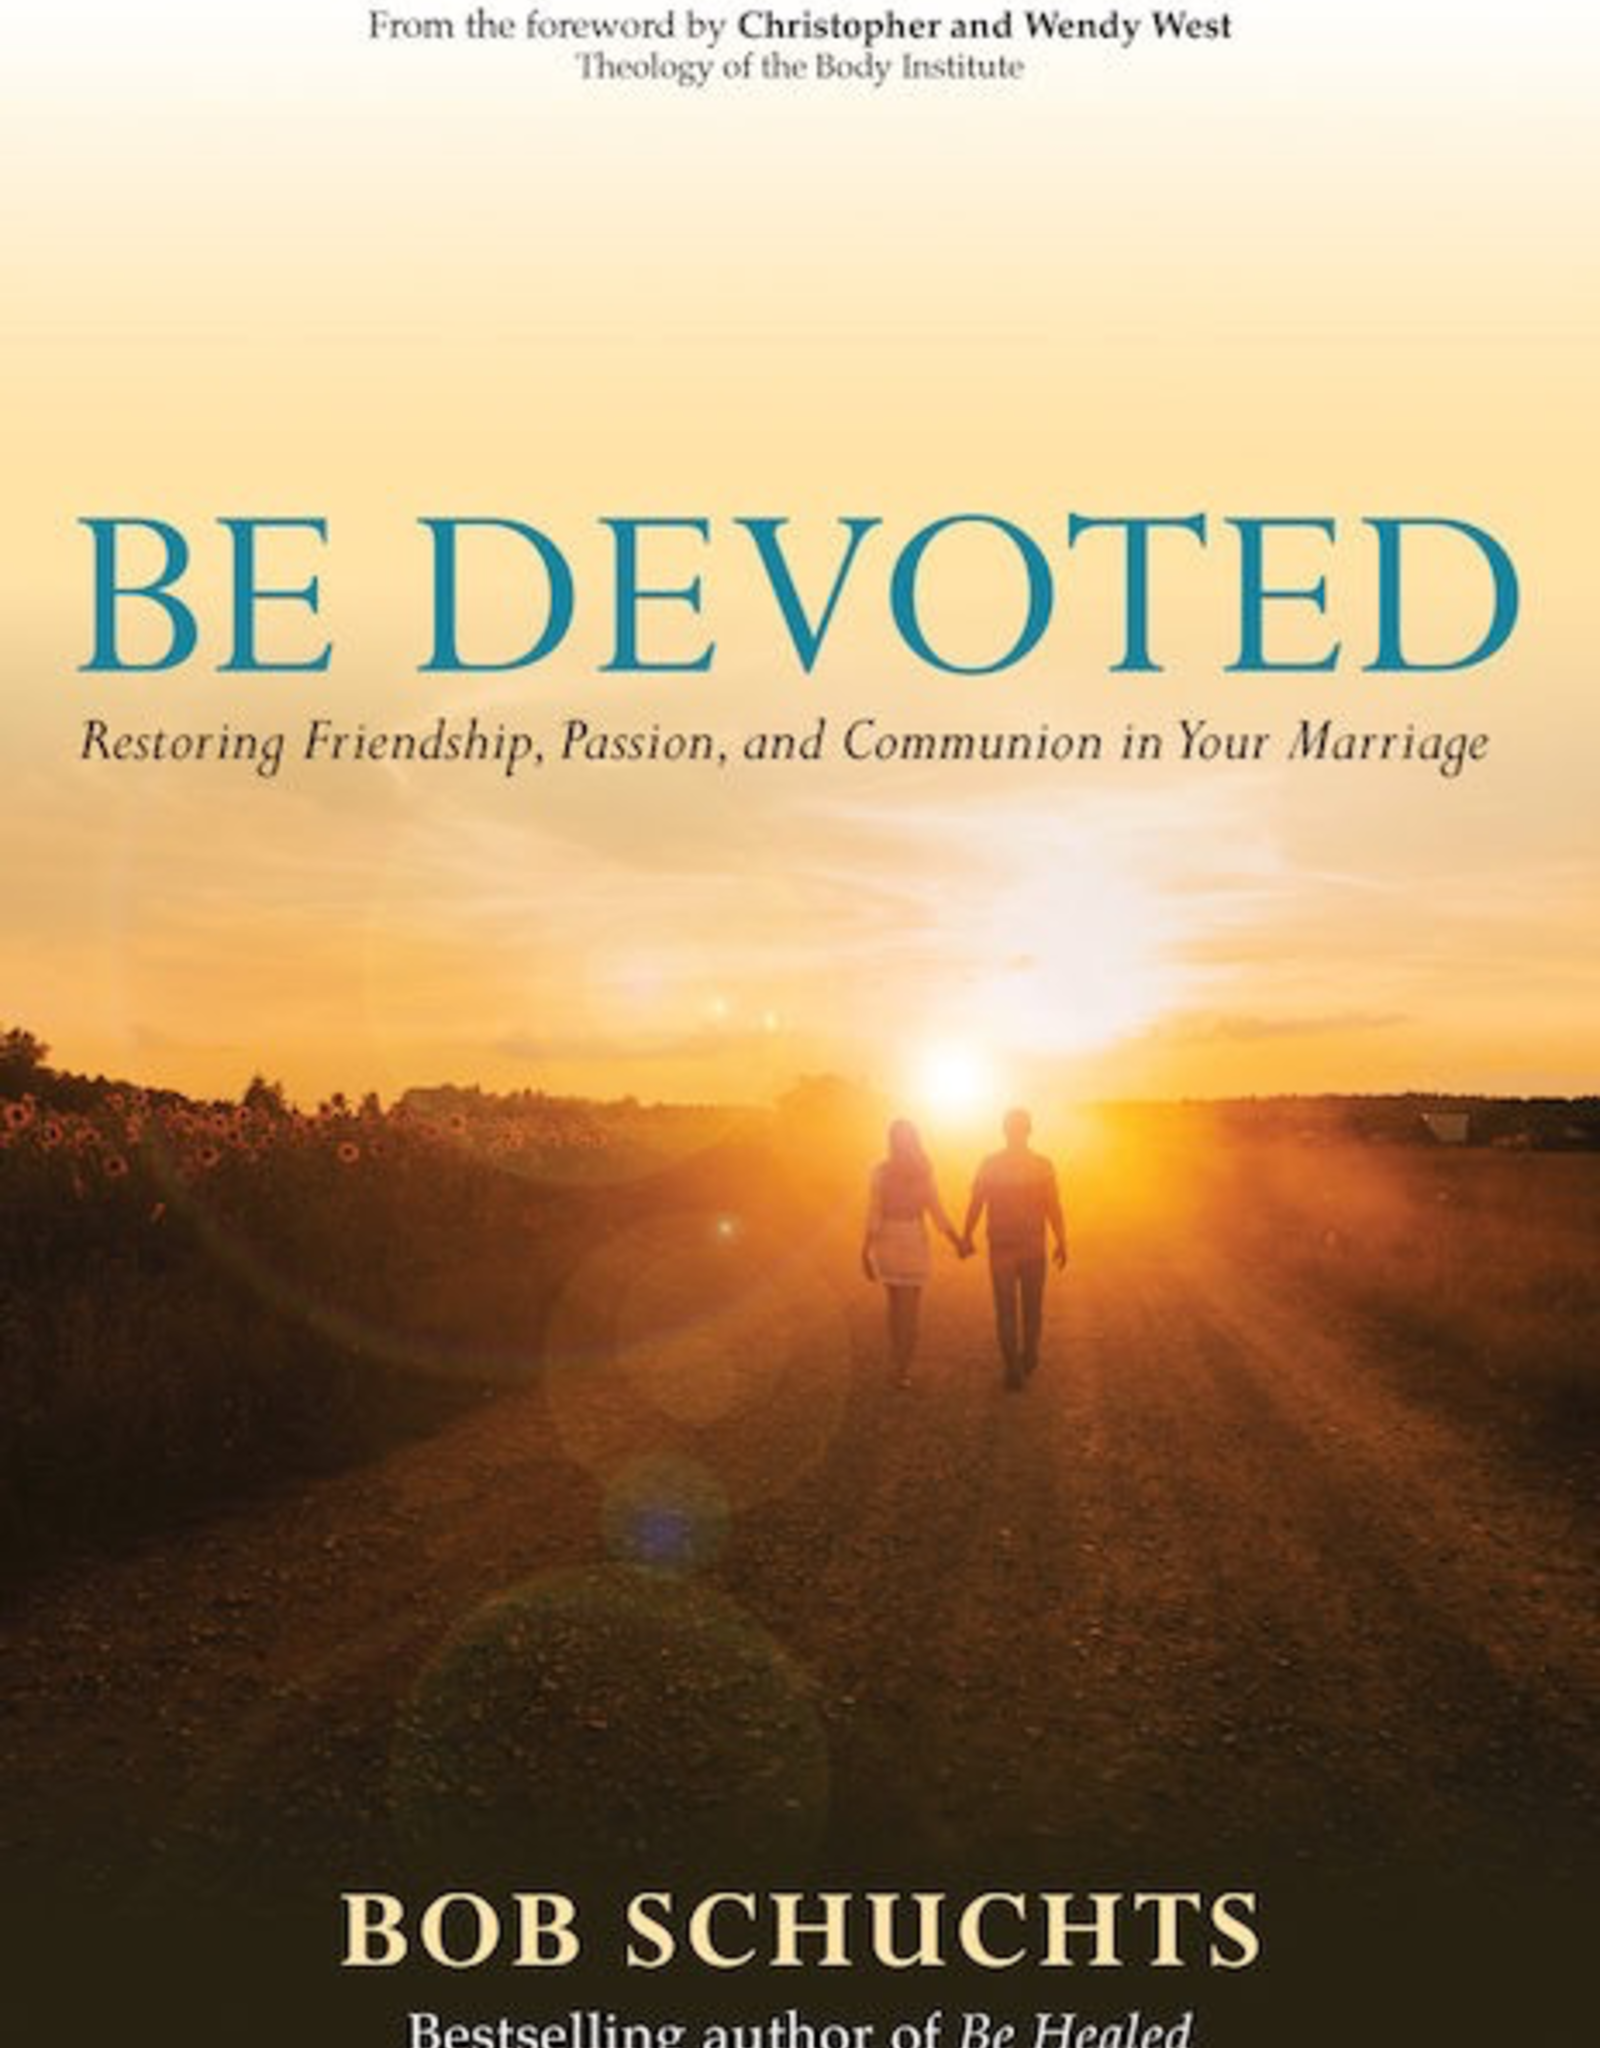 Ave Maria Press Be Devoted:  Restoring Friendship, Passion, and Communion in Your Marriage, by Bob Schuchts (paperback)